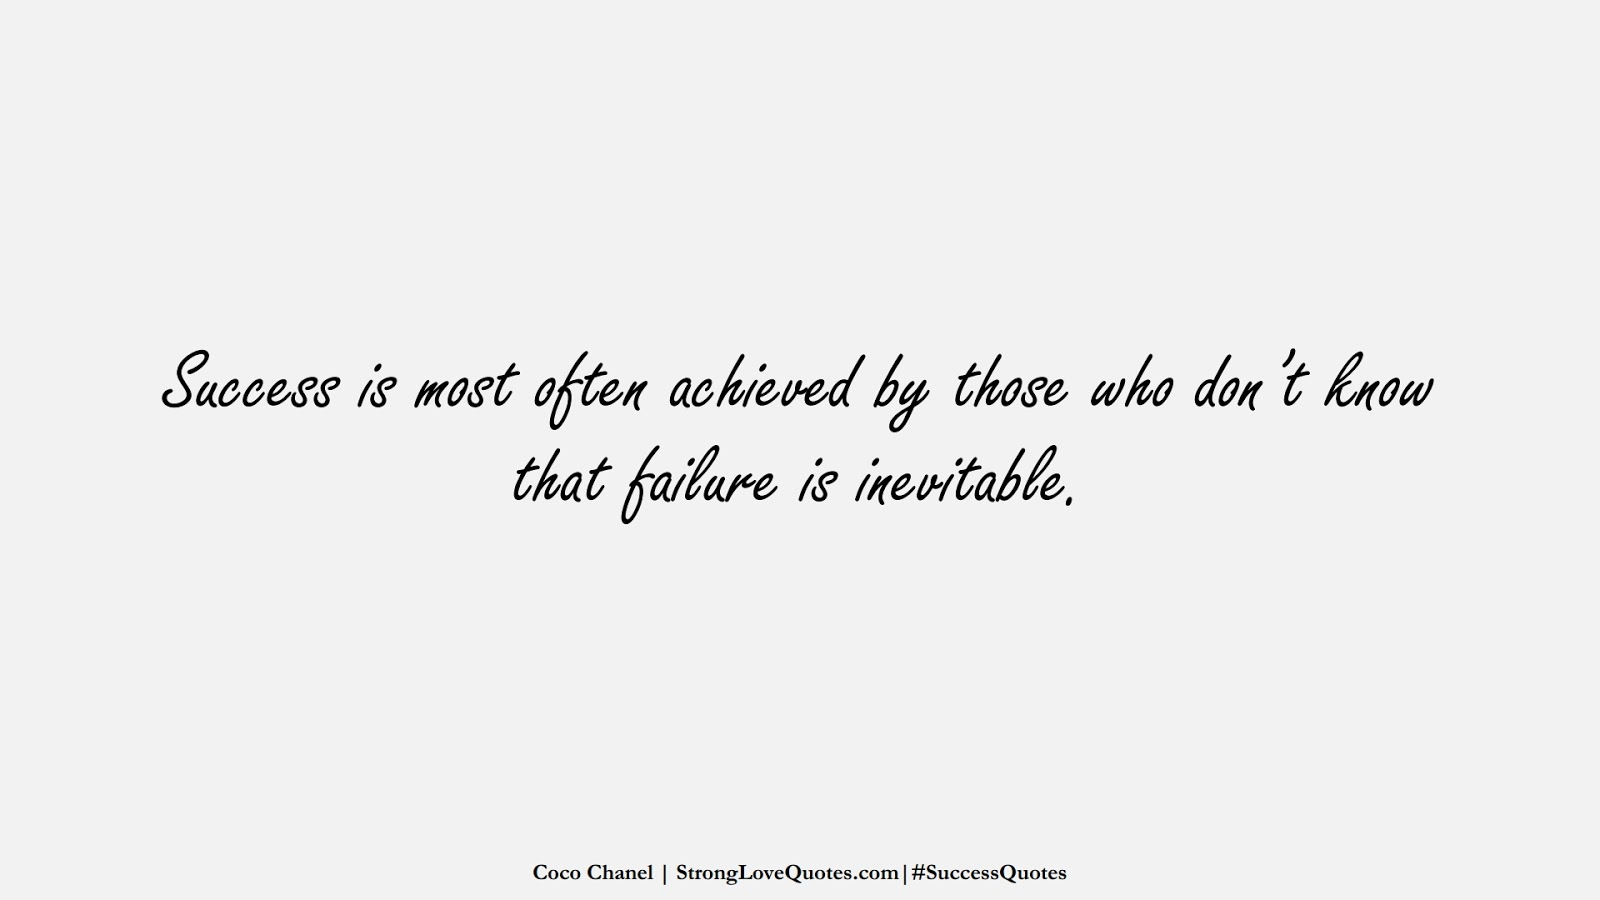 Success is most often achieved by those who don't know that failure is inevitable. (Coco Chanel);  #SuccessQuotes